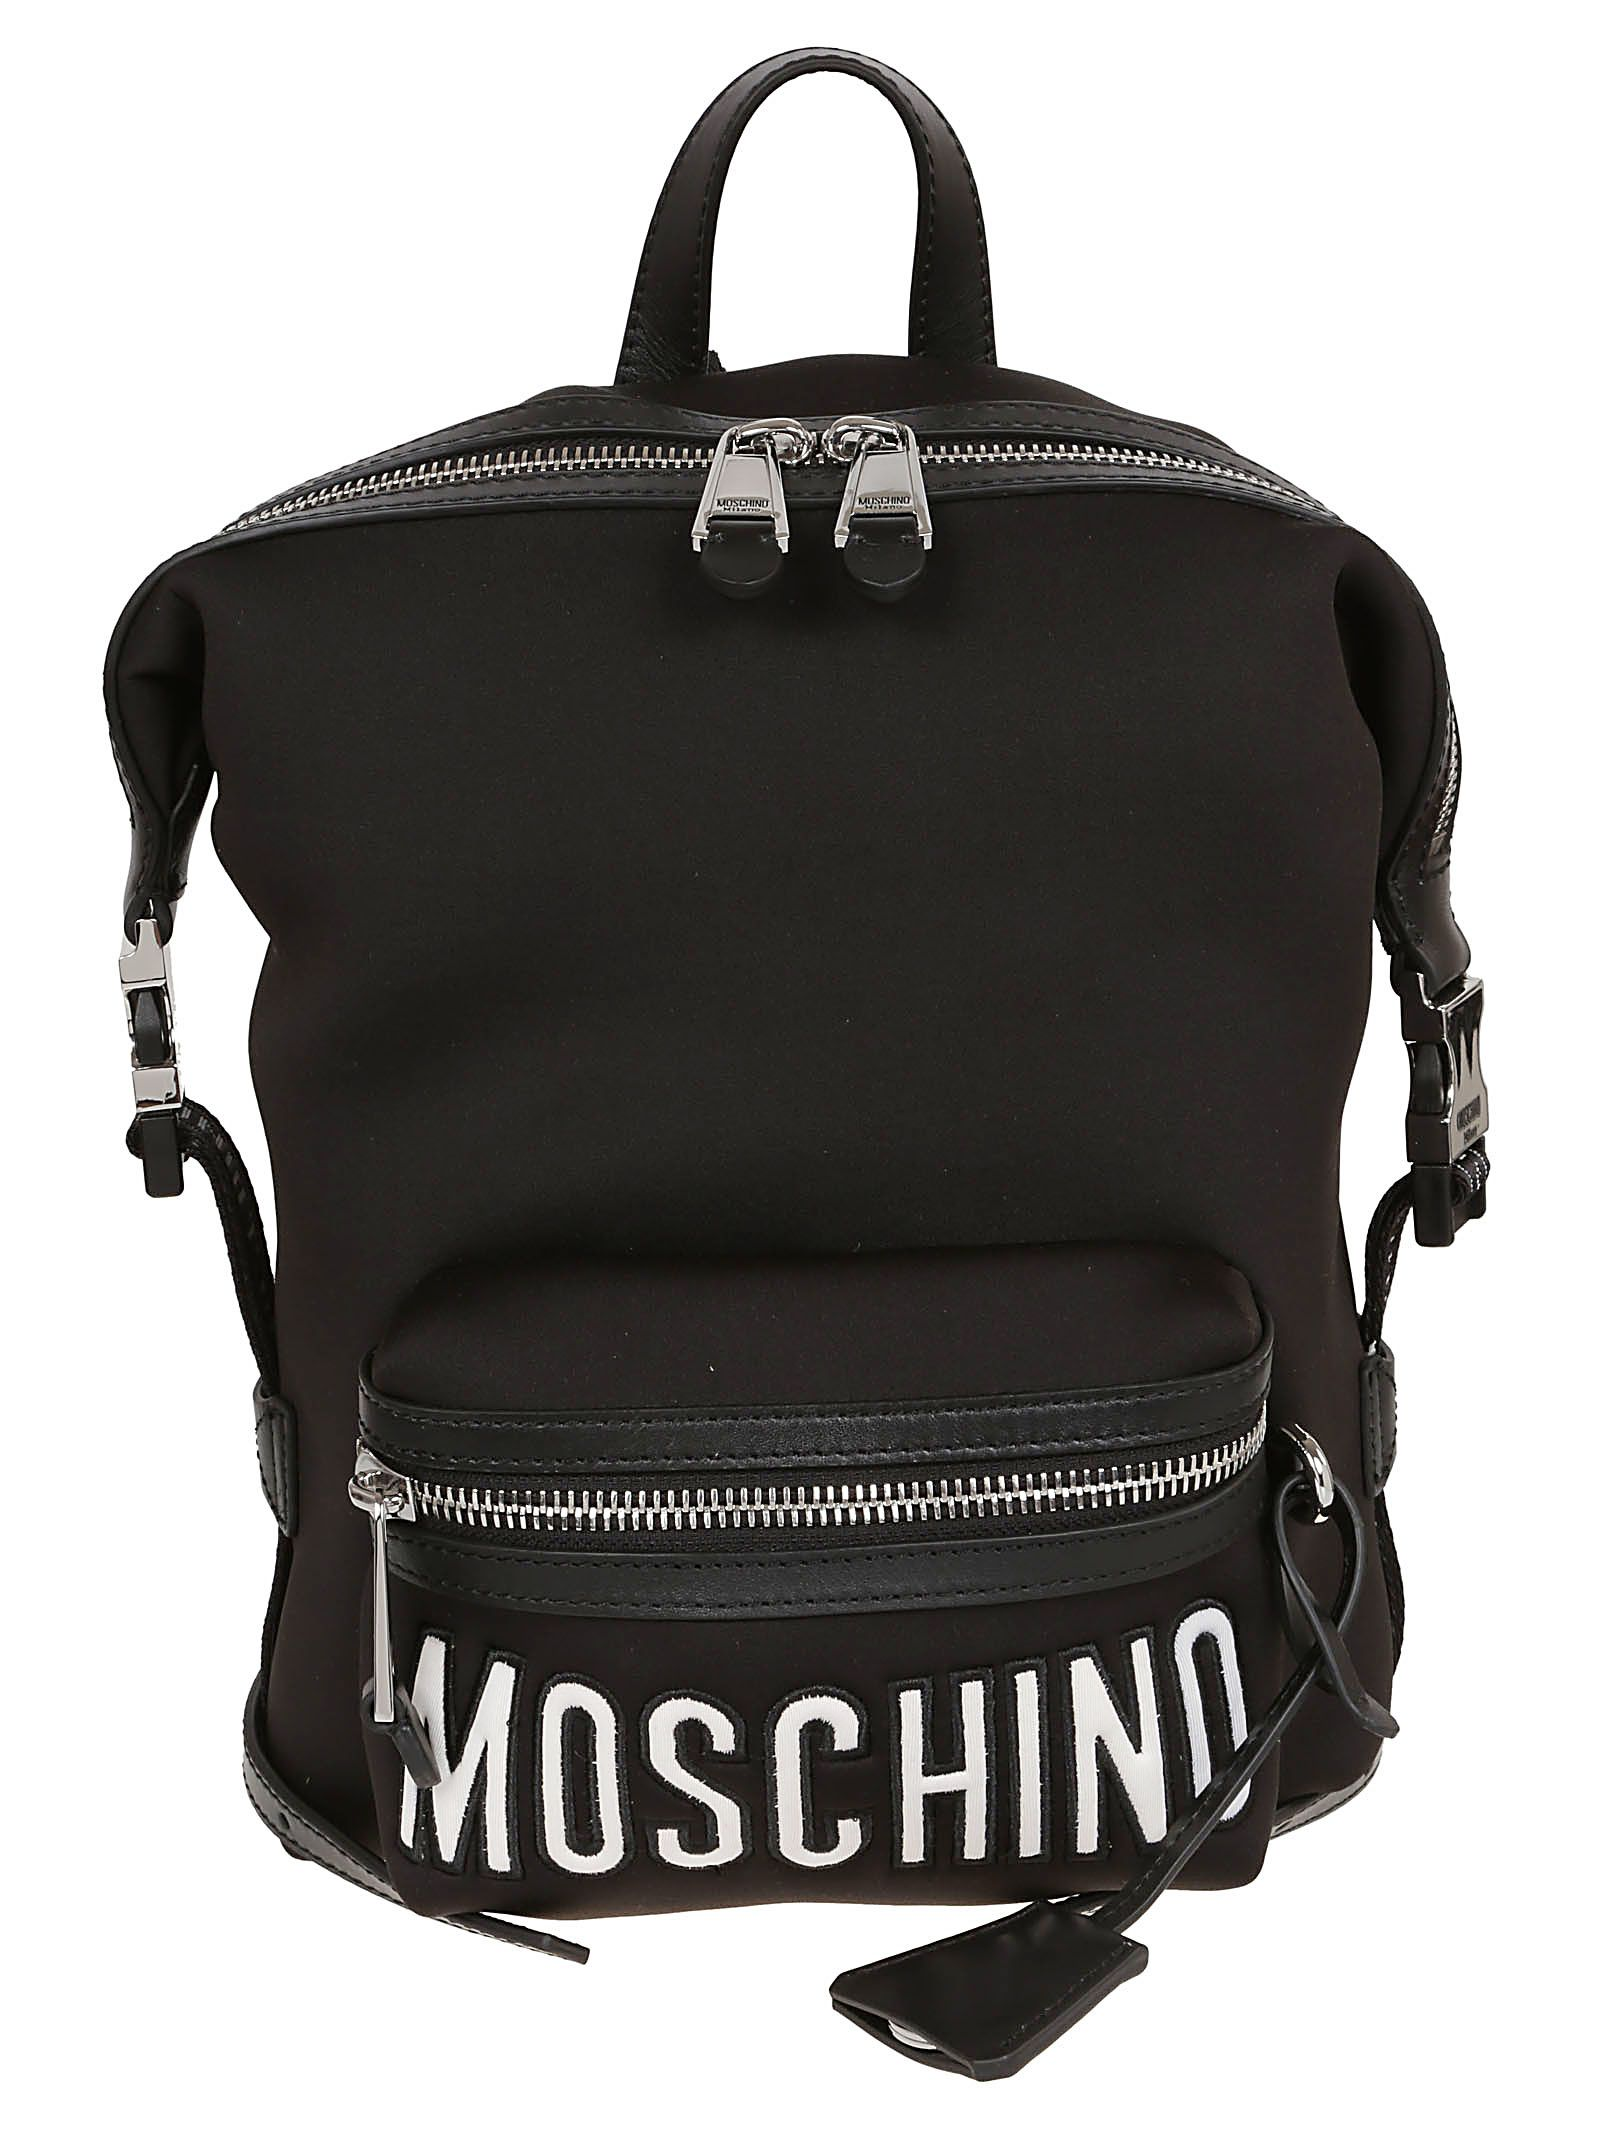 Backpack In Neoprene With Black Leather Inserts, Bnero